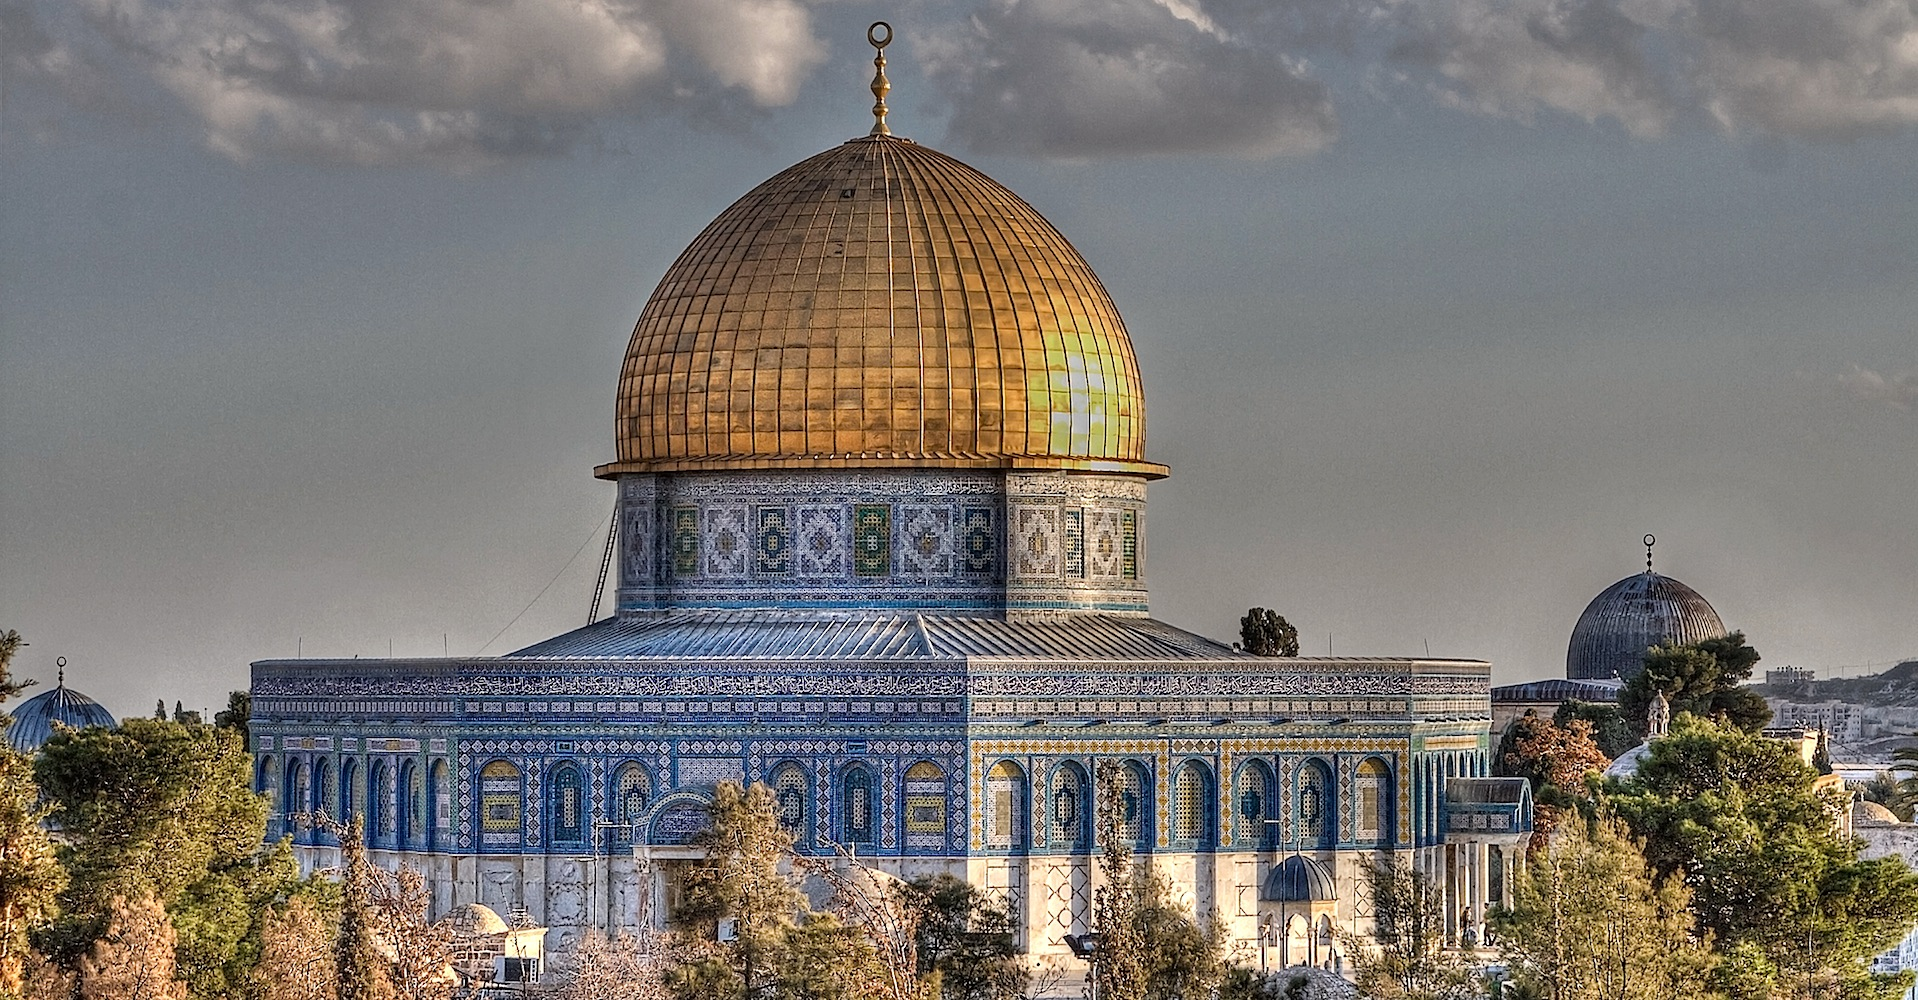 Dome of the rock in jerusalem pictures Church of the Dormition See The Holy Land